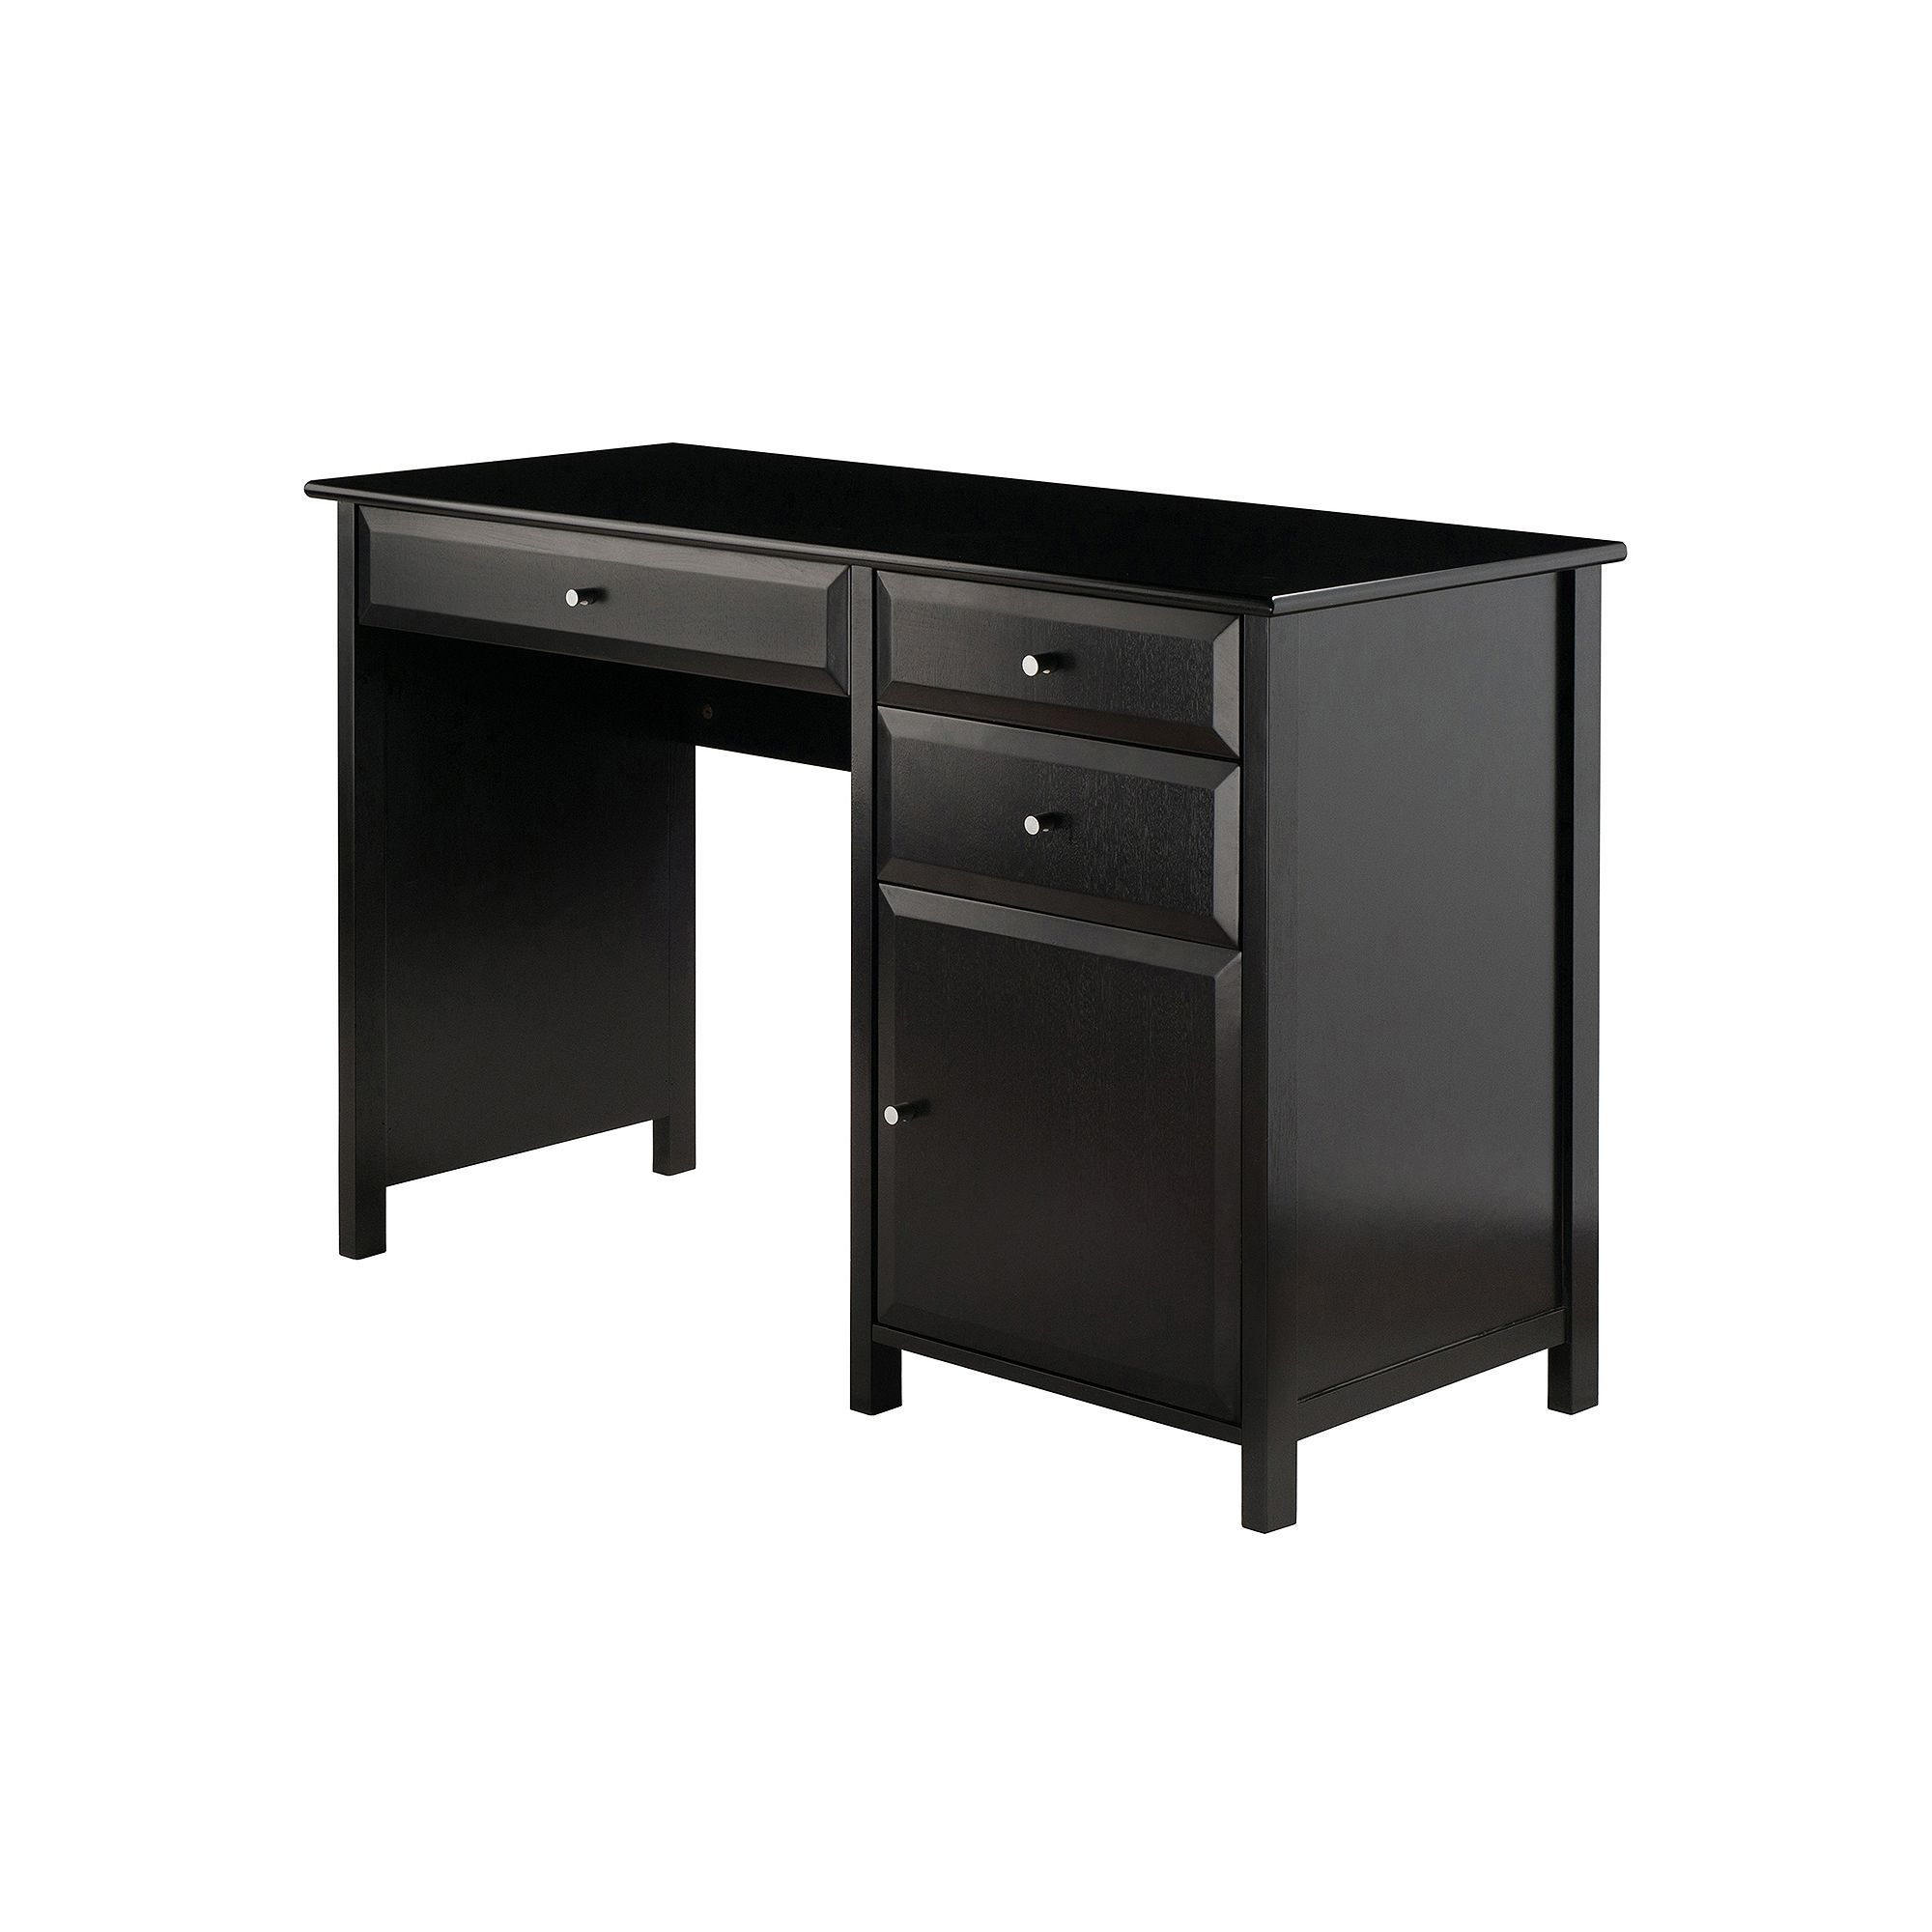 Winsome Delta Office Writing Desk In 2020 Black Writing Desk Black Desk Writing Desk